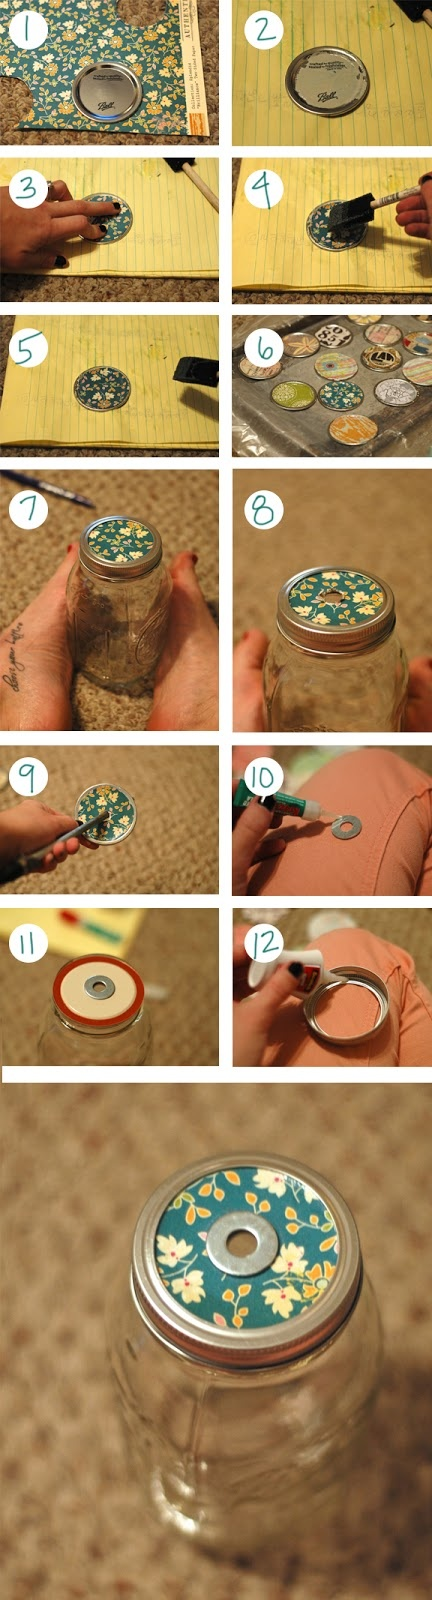 How to make DIY reusable mason jar to-go cup step by step tutorial instructions